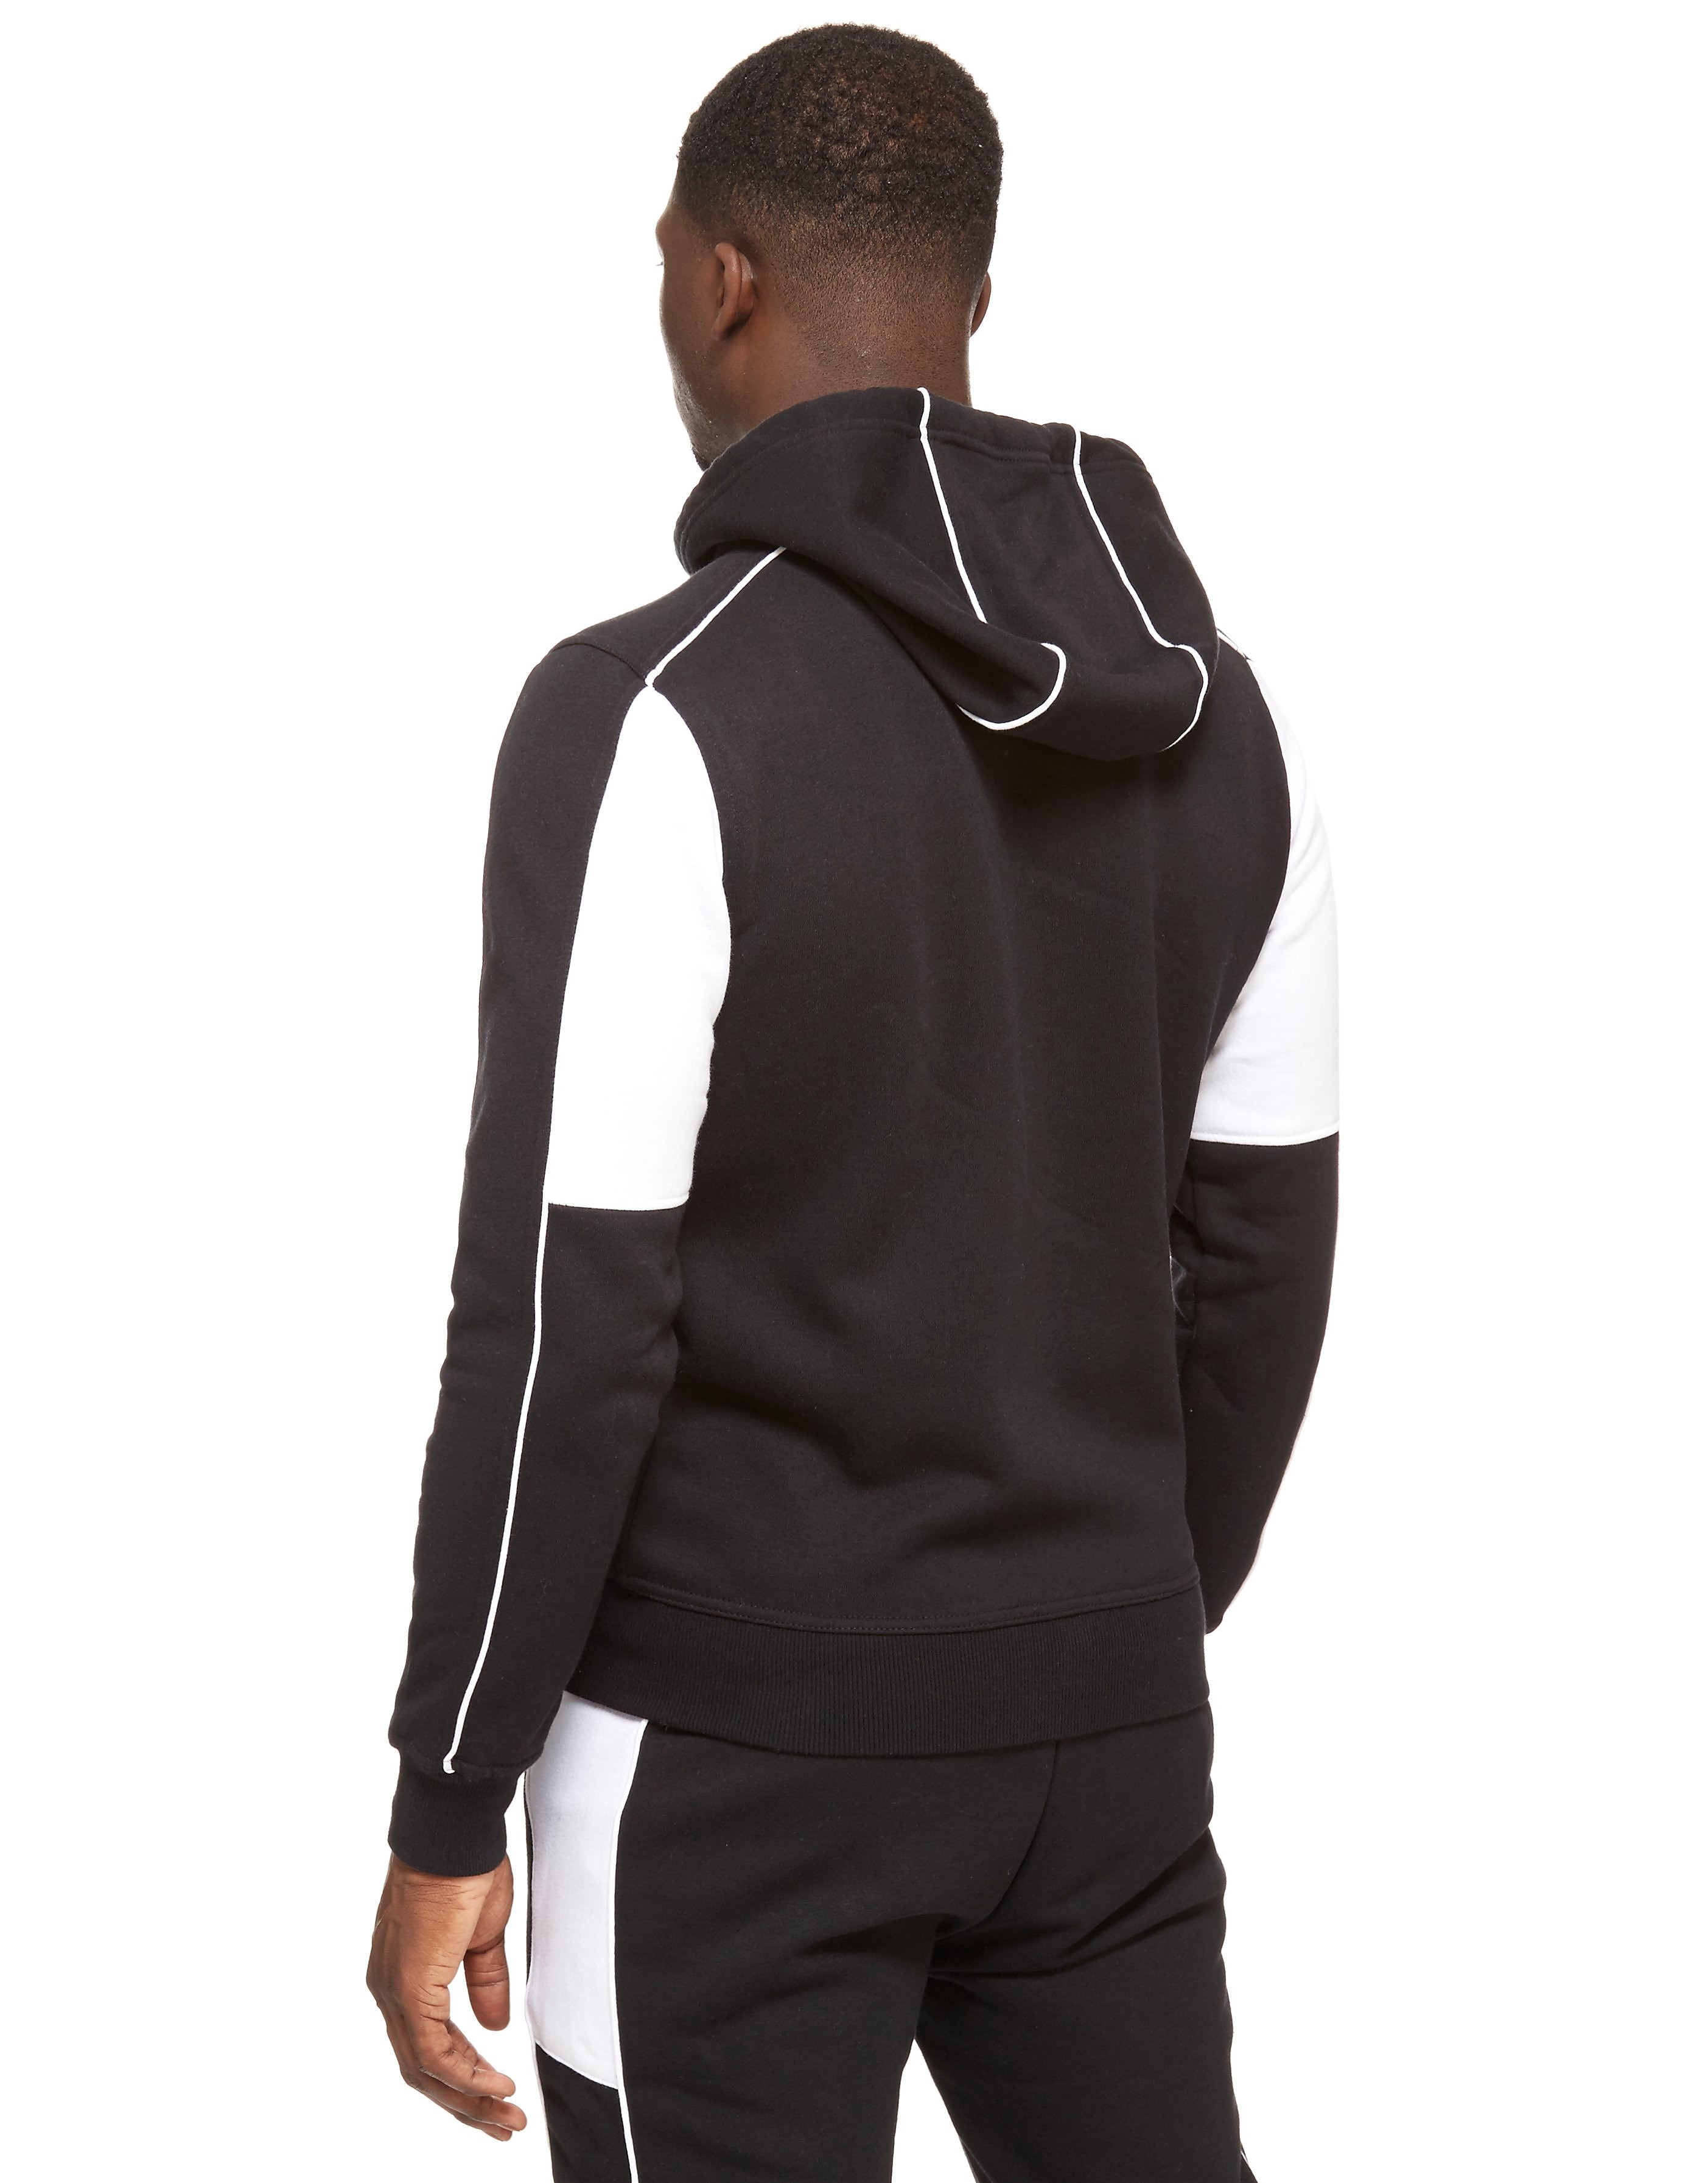 McKenzie Triton Zip Through Hoody